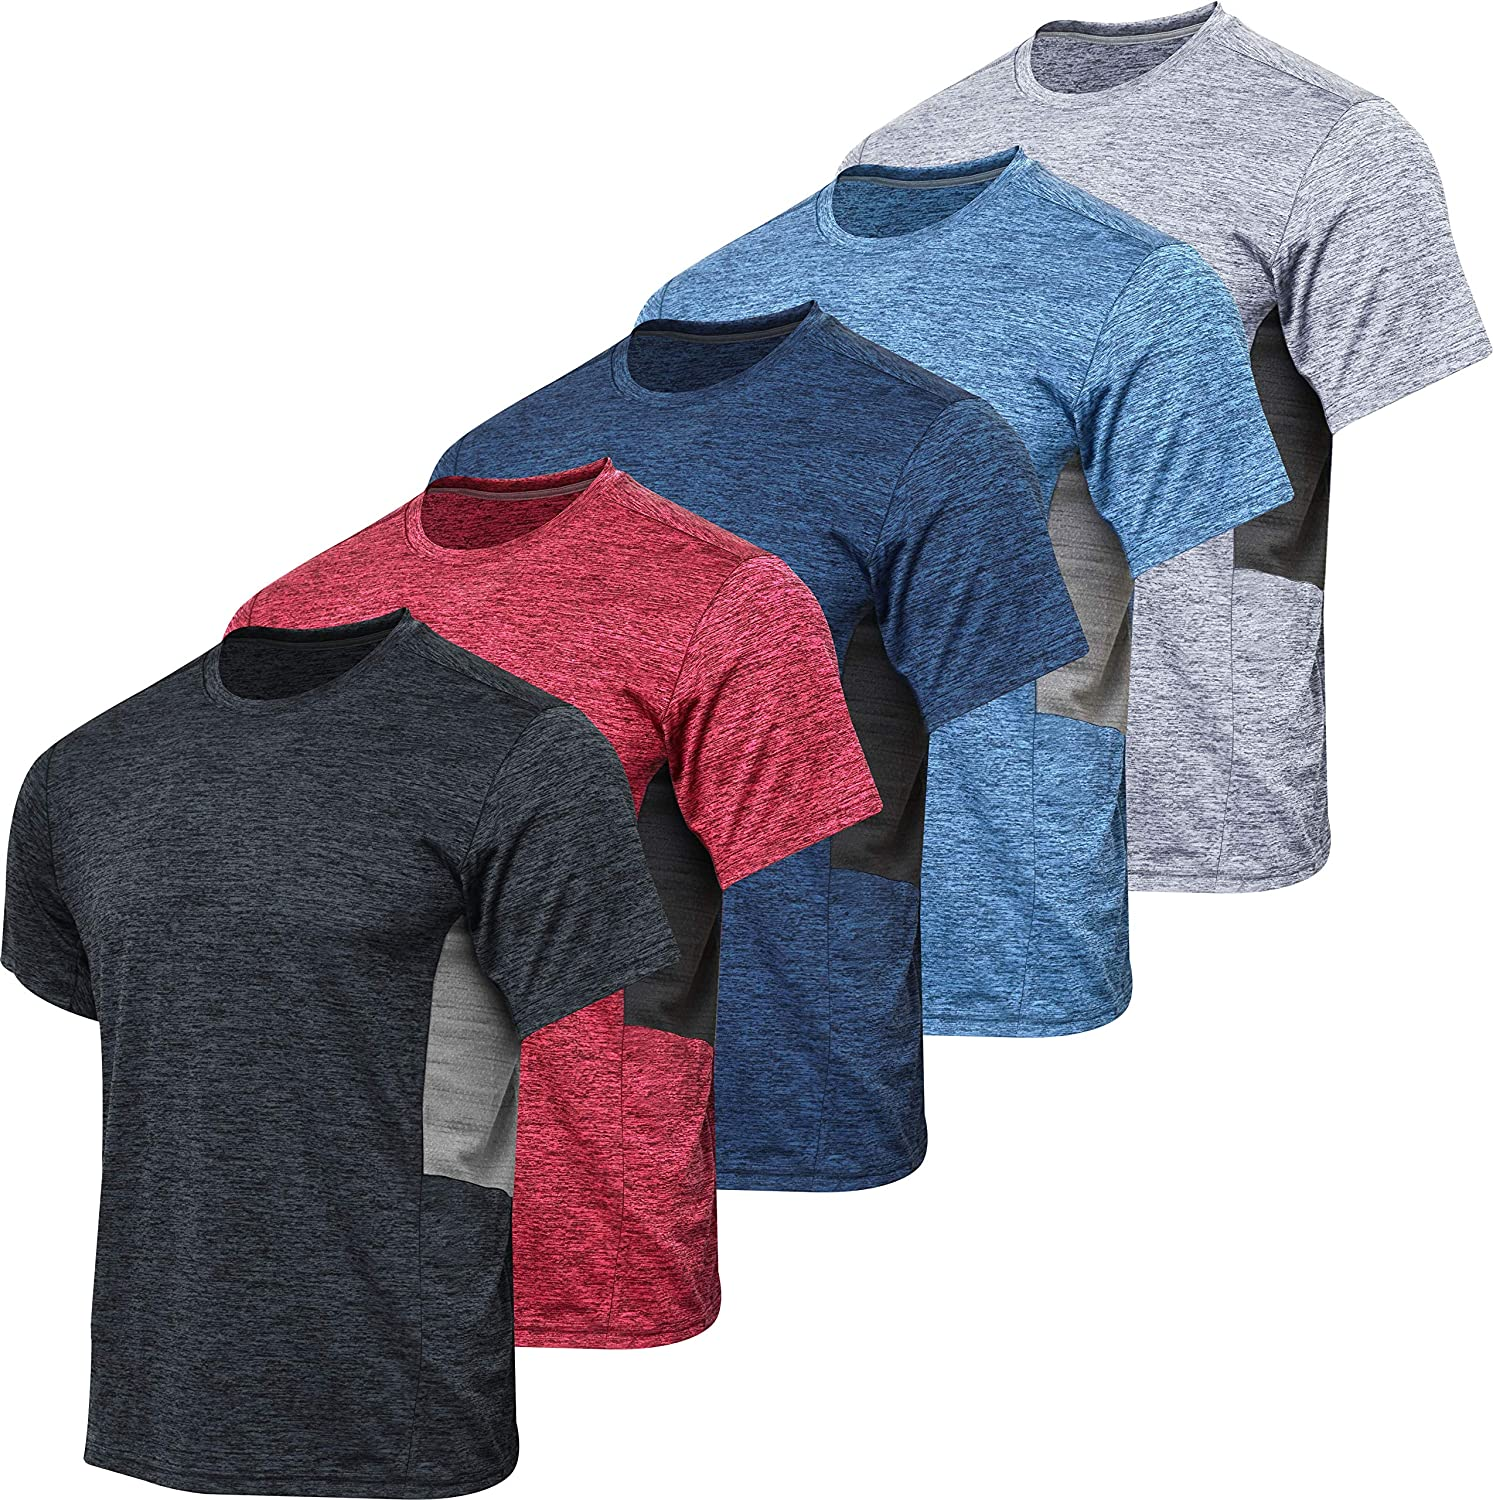 5 Pack: Men's Dry-Fit Moisture Wicking Active Athletic Performance Crew T-Shirt